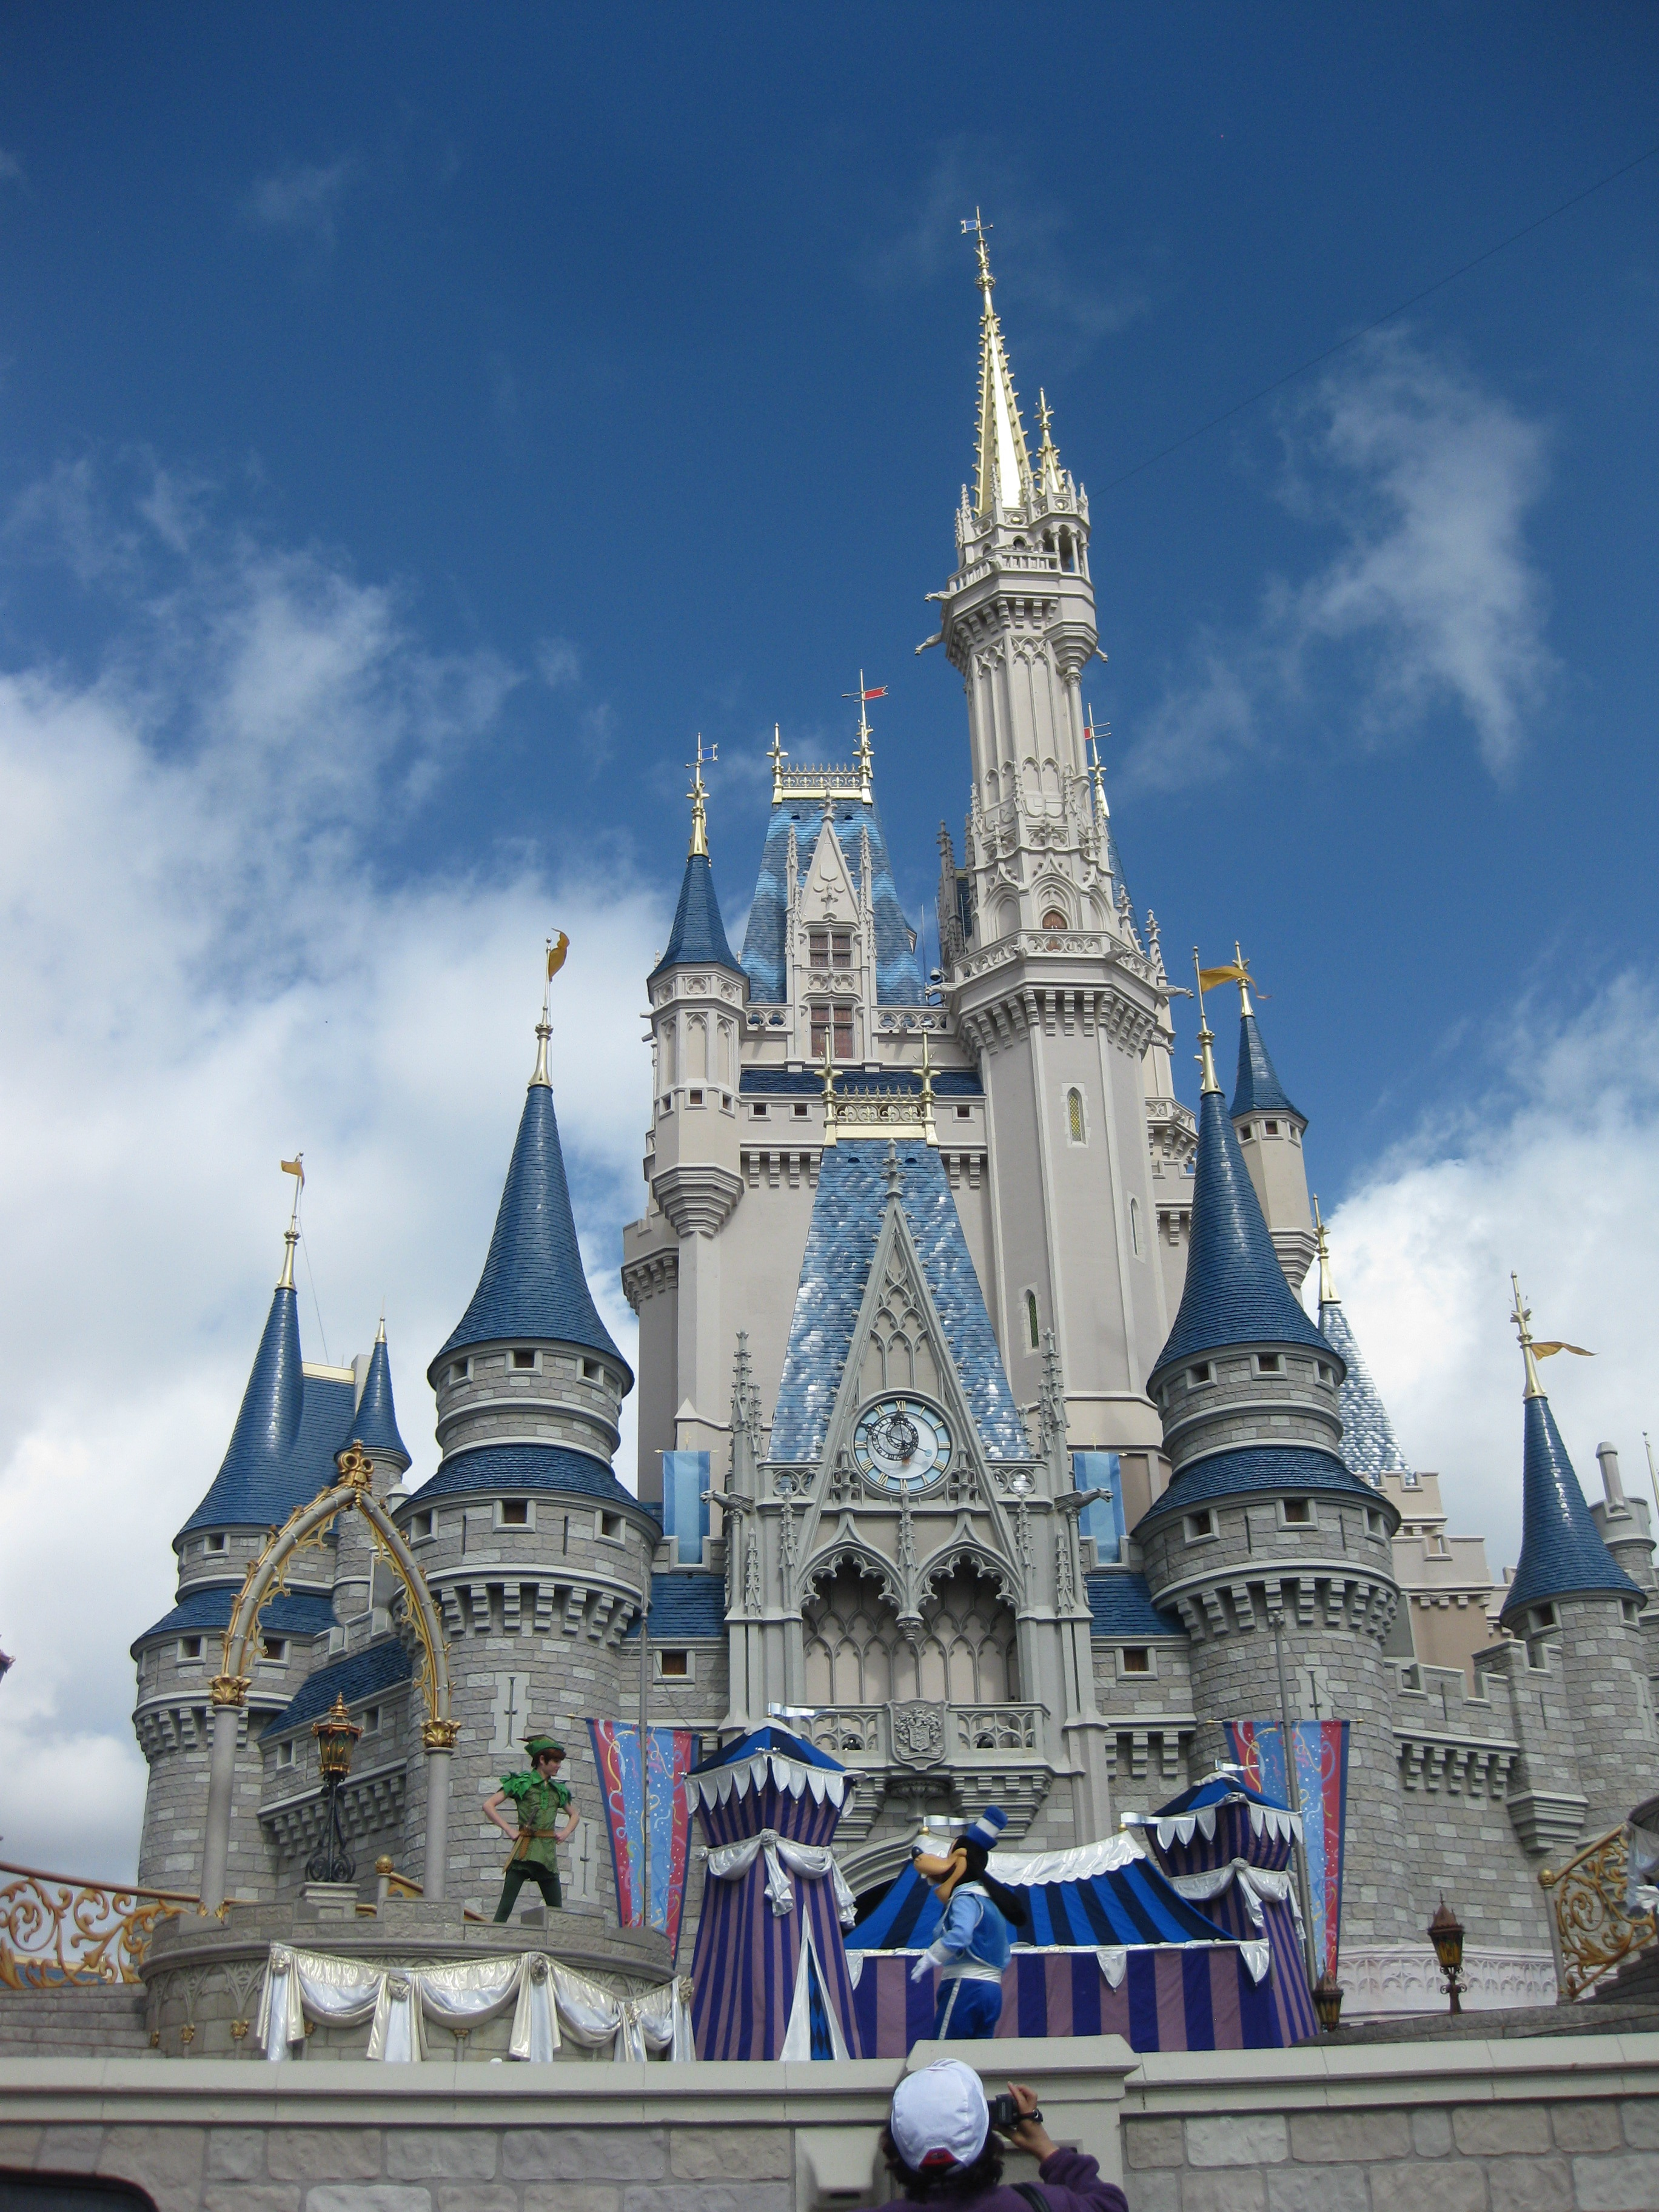 First Time At Walt Disney World? Here's Some Tips From Me ...